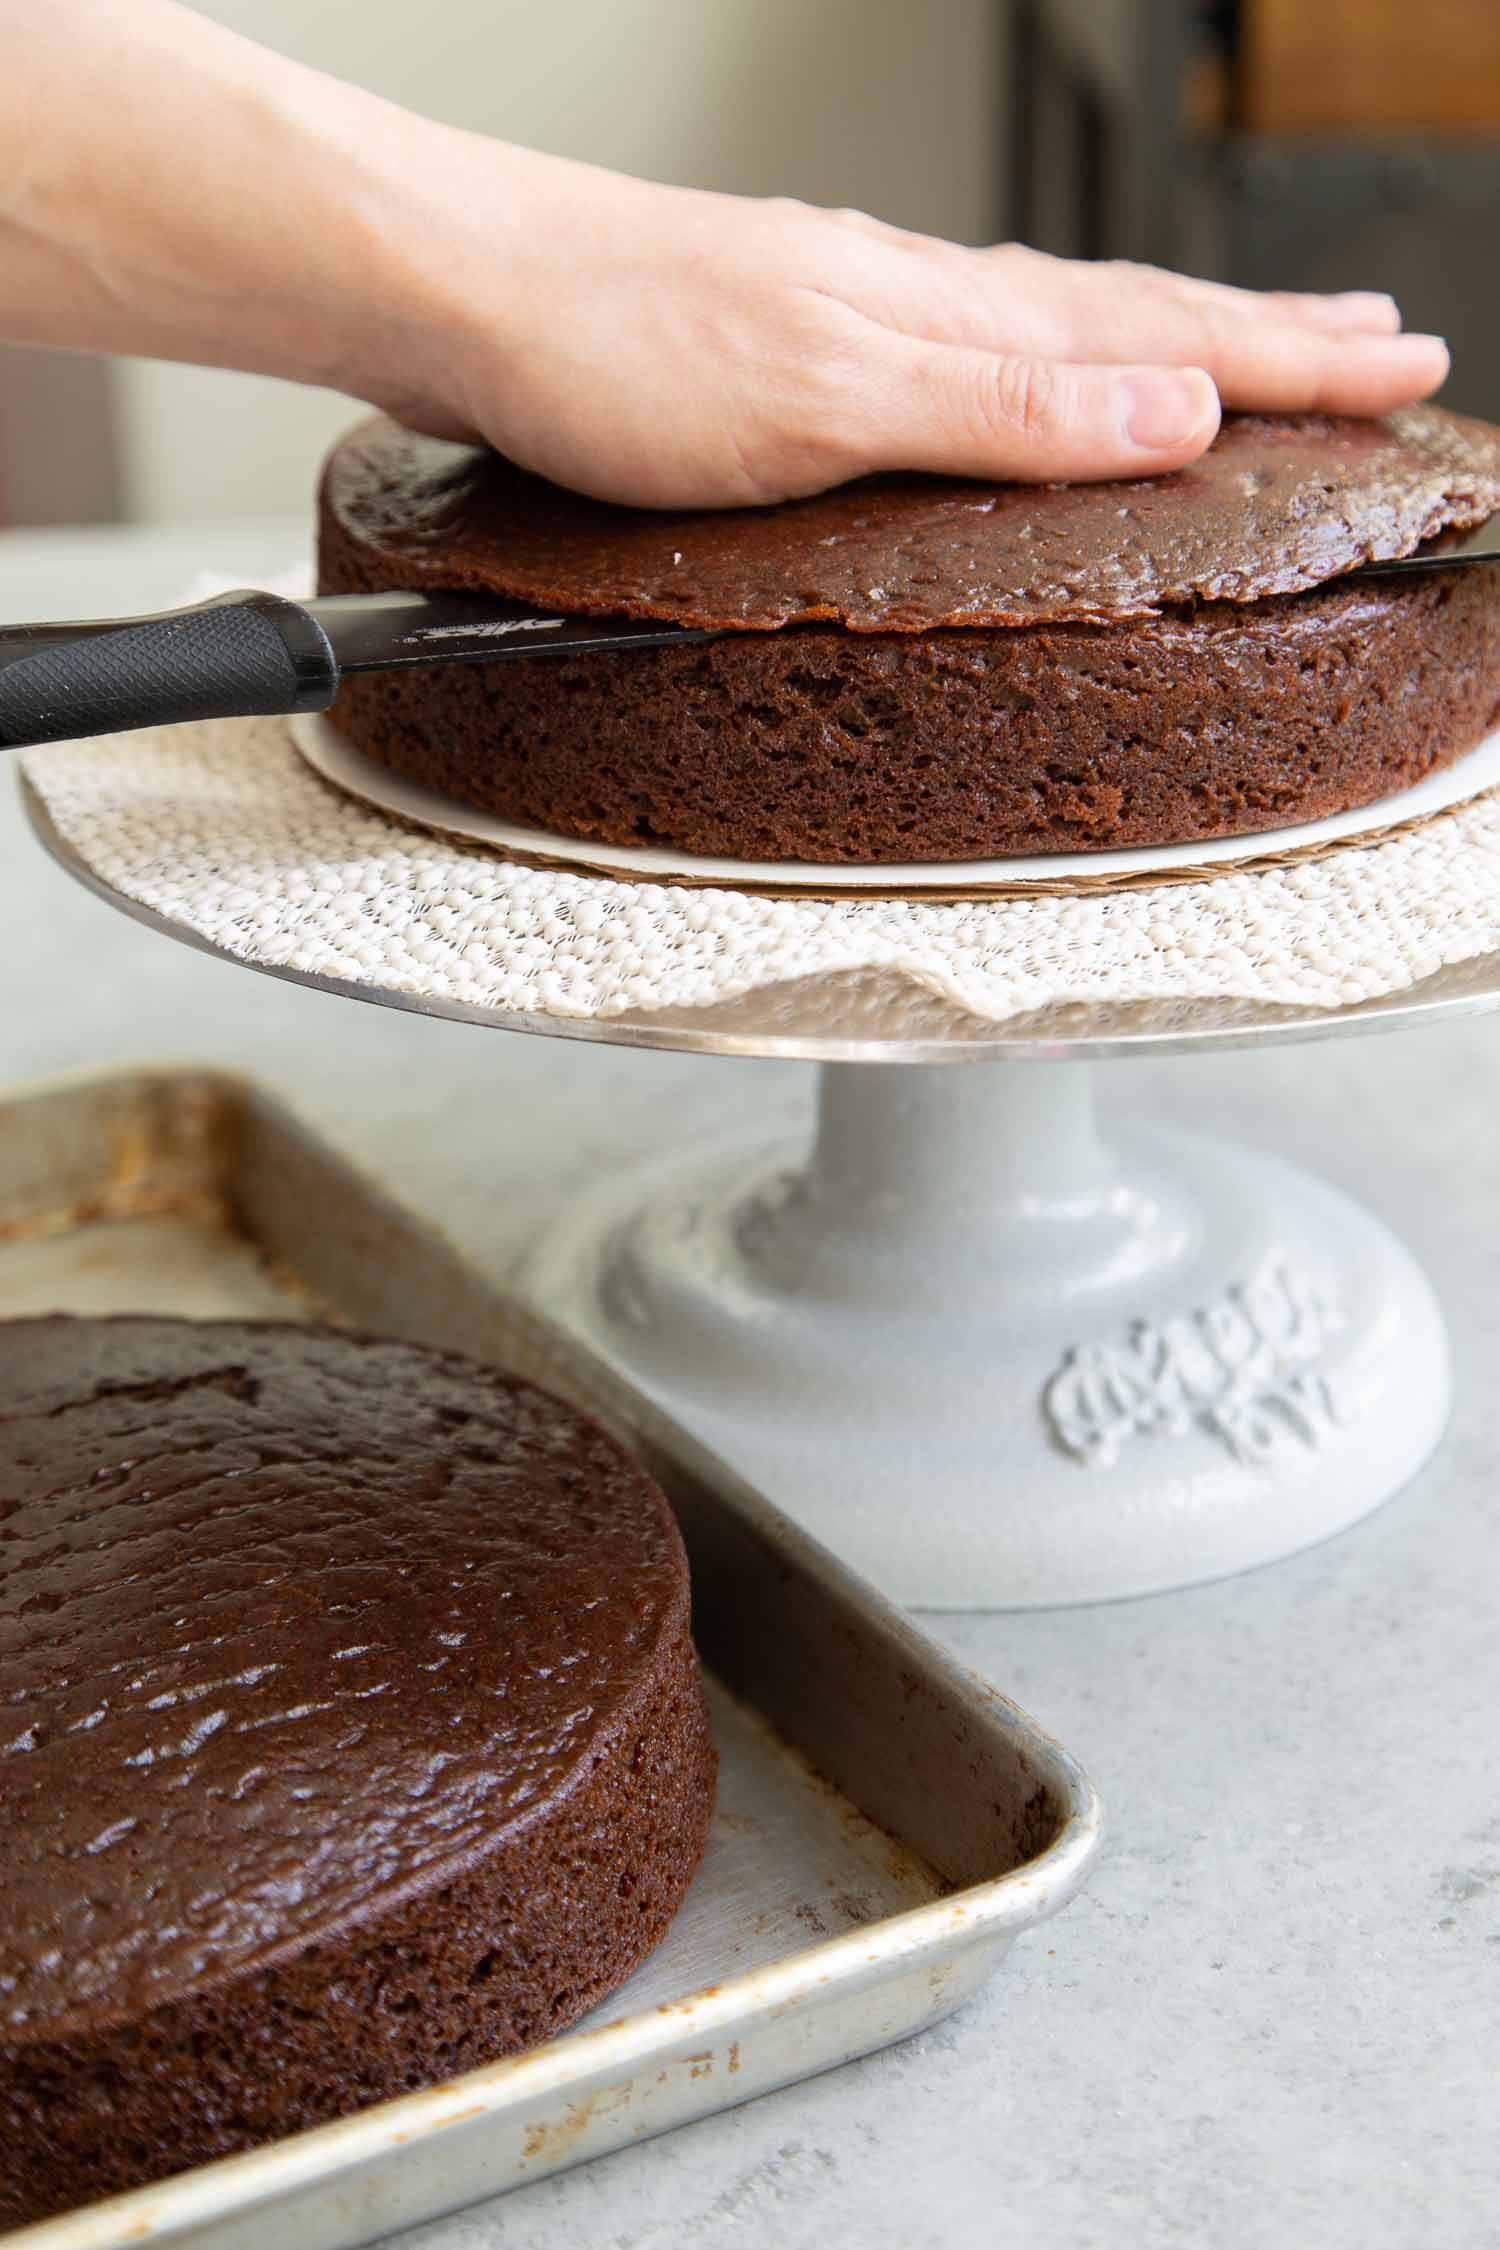 This classic chocolate cake recipe makes two 8-inch cake layers or three 6-inch cake layers. Use a serrated cake knife to level cake layers if necessary.